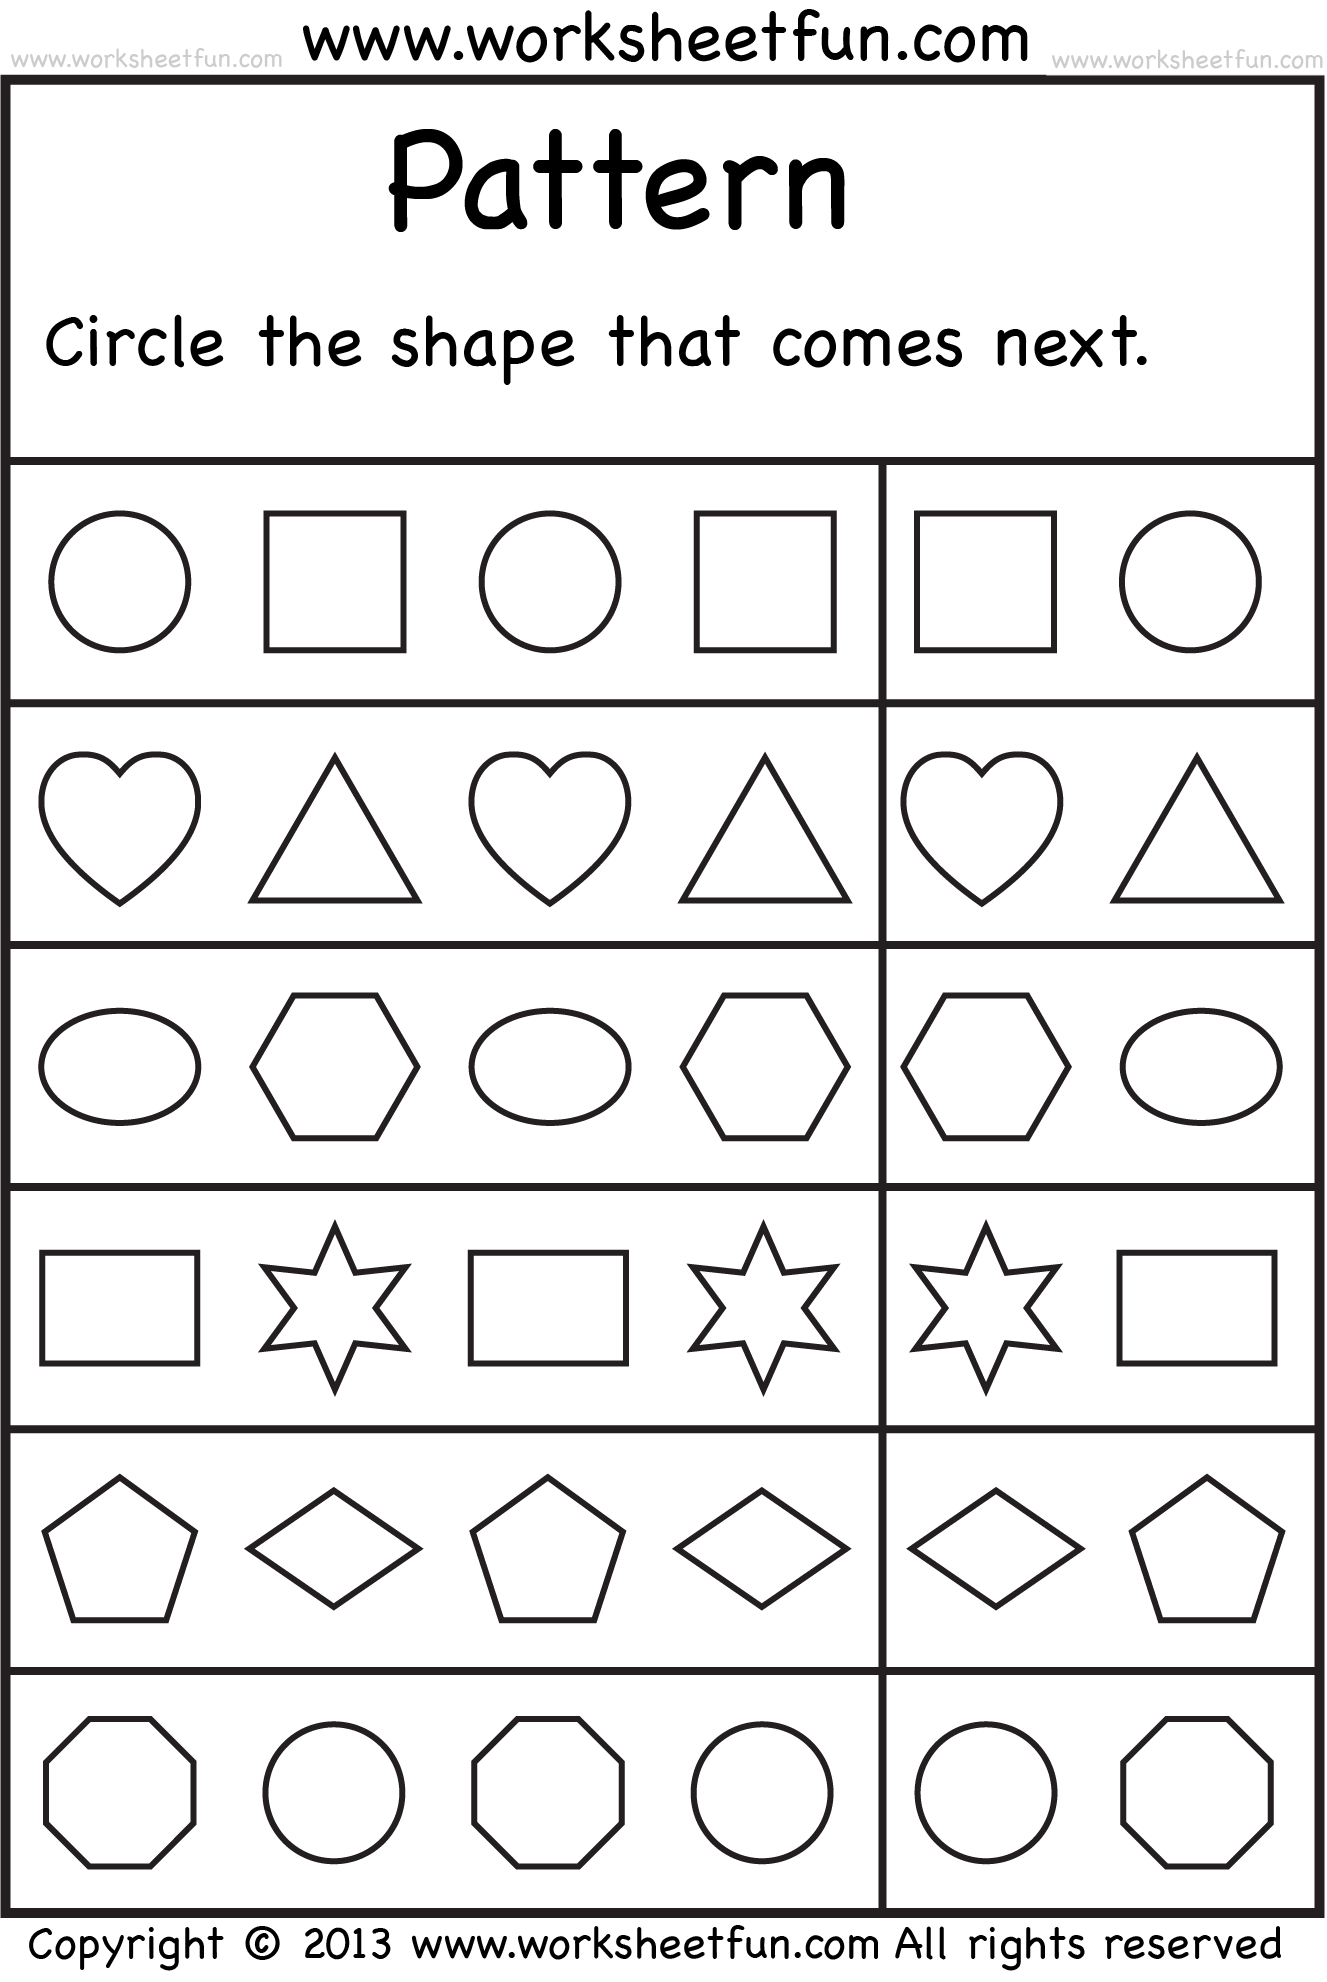 Weirdmailus  Picturesque  Images About School Worksheets On Pinterest  Number Words  With Engaging  Images About School Worksheets On Pinterest  Number Words Alphabet Worksheets And Free Printable Kindergarten Worksheets With Lovely Maths Pyramid Worksheet Also Angle Pairs Worksheets In Addition  Digit Multiplication Worksheets Grade  And Vba Worksheet Copy As Well As  L Of The A Worksheet Additionally In Out Boxes Worksheets From Pinterestcom With Weirdmailus  Engaging  Images About School Worksheets On Pinterest  Number Words  With Lovely  Images About School Worksheets On Pinterest  Number Words Alphabet Worksheets And Free Printable Kindergarten Worksheets And Picturesque Maths Pyramid Worksheet Also Angle Pairs Worksheets In Addition  Digit Multiplication Worksheets Grade  From Pinterestcom